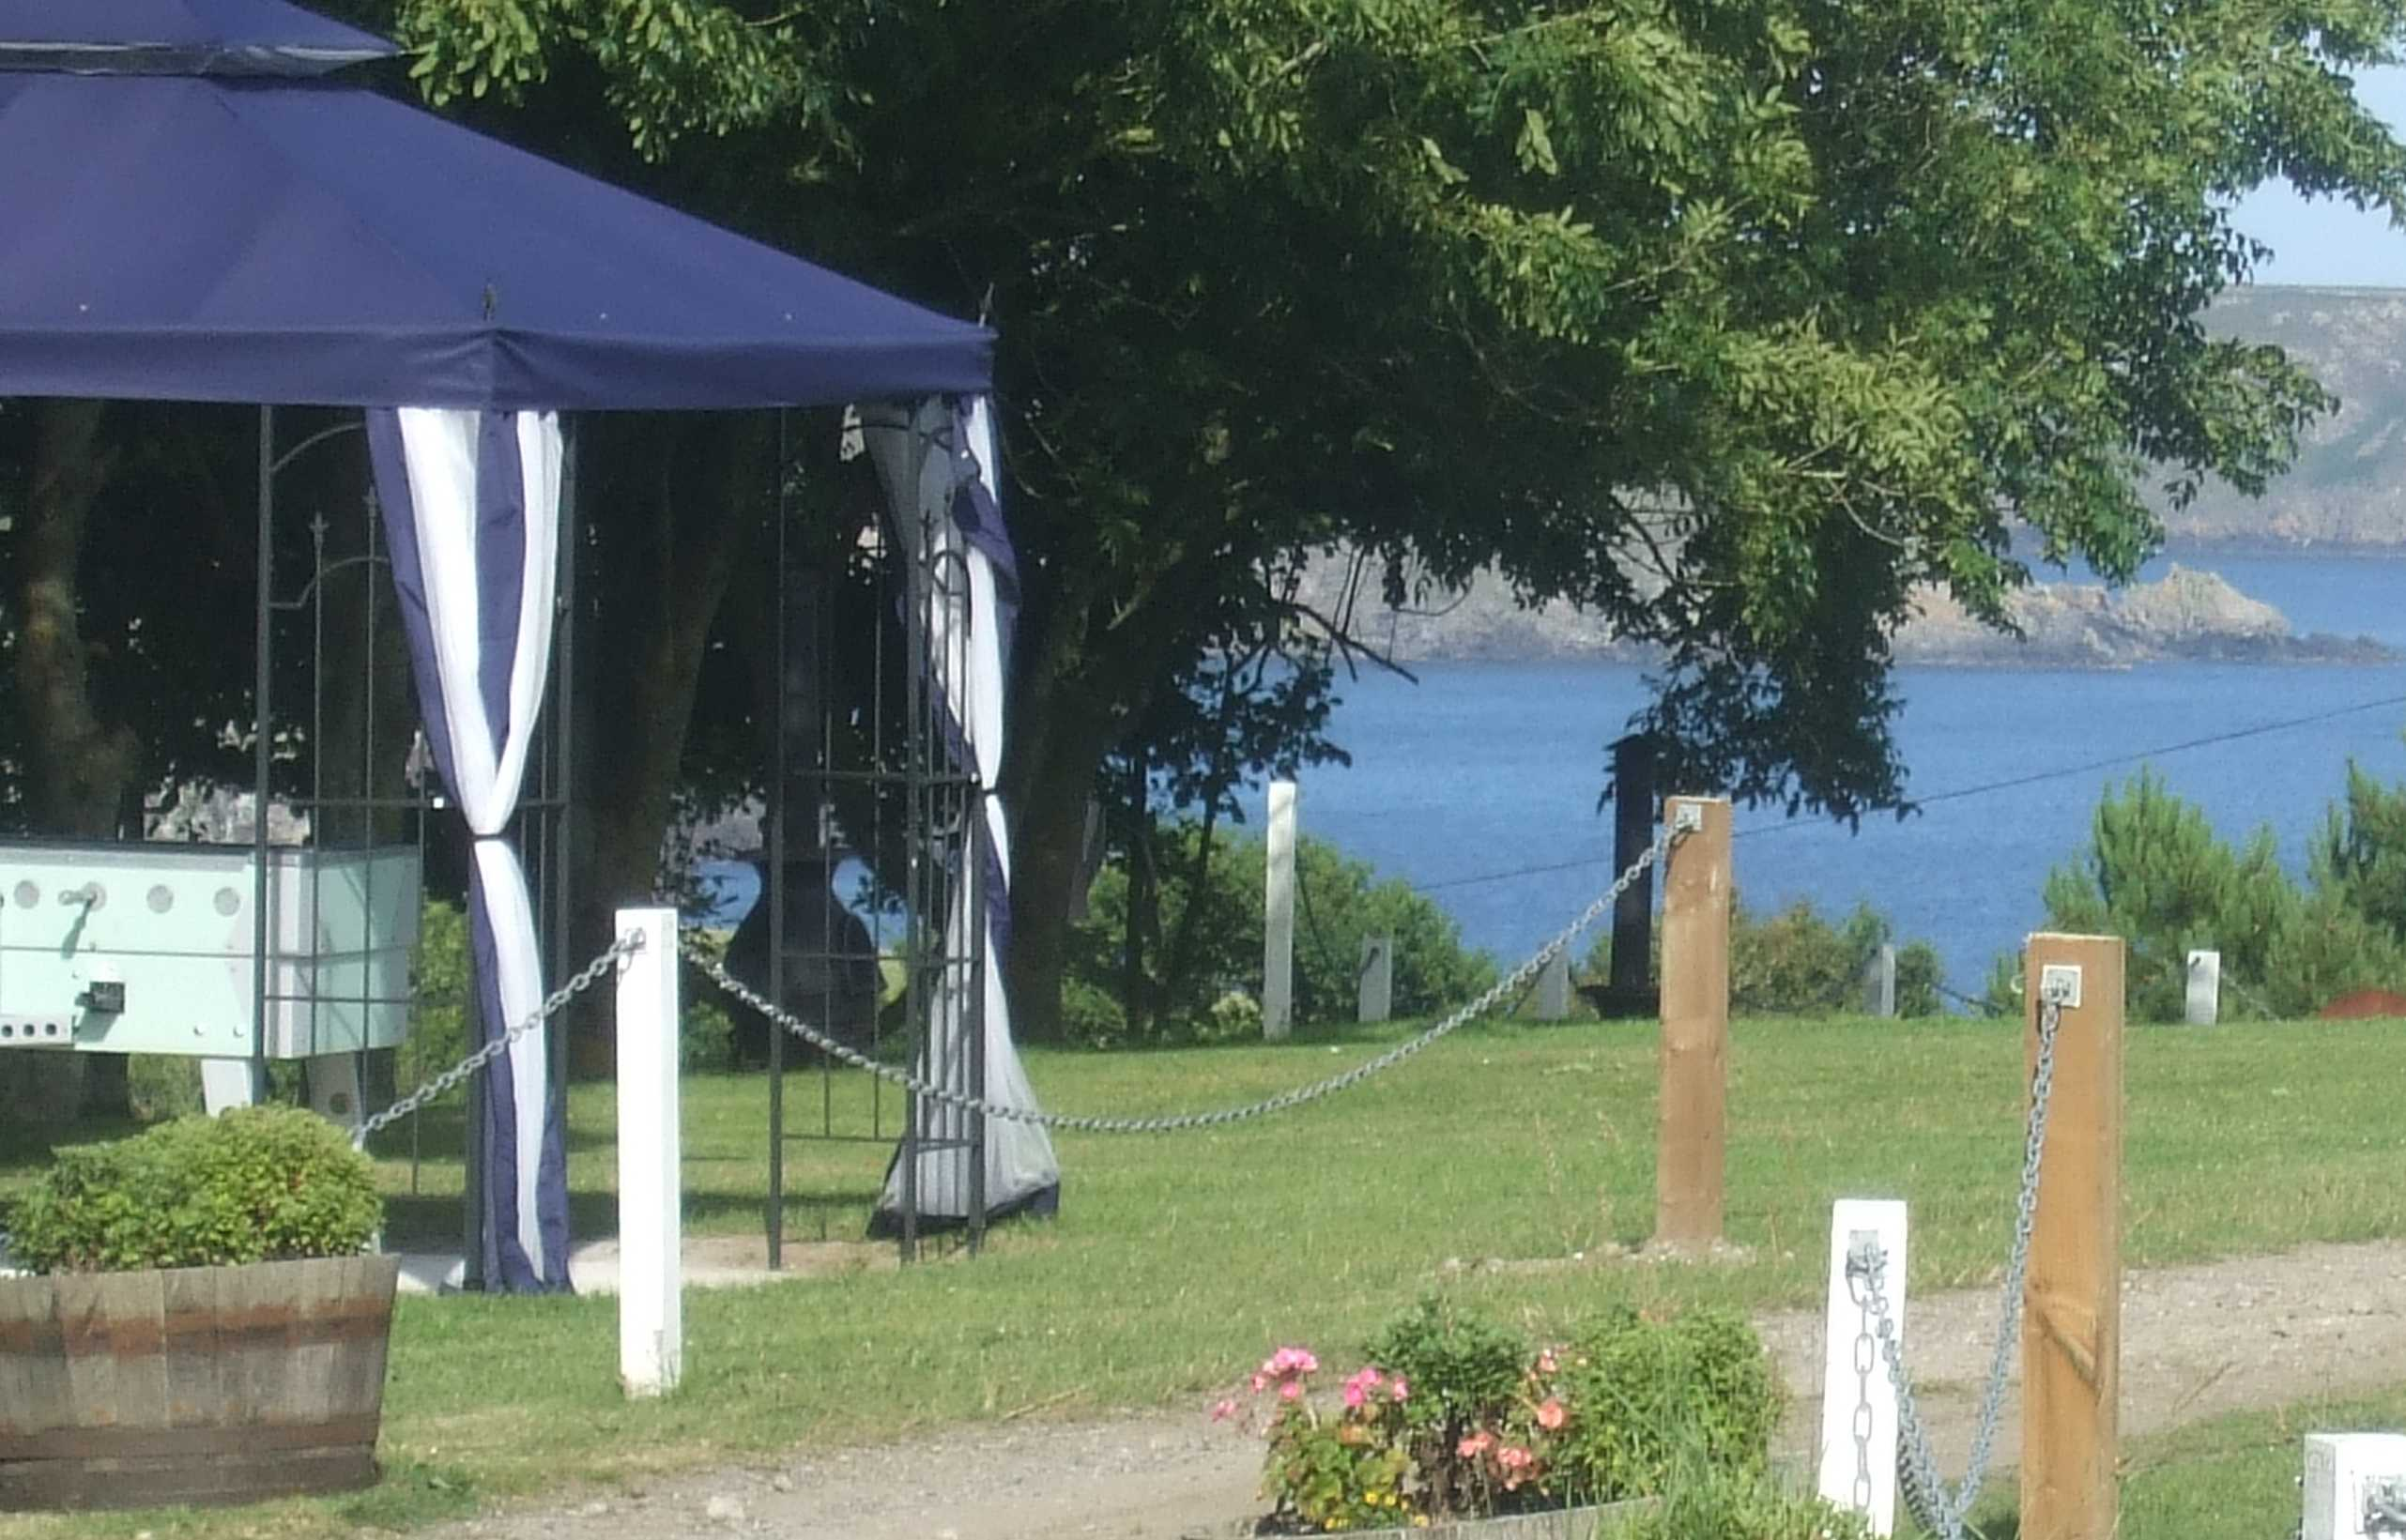 Campsites in Cornwall, Cornish Camping and Touring